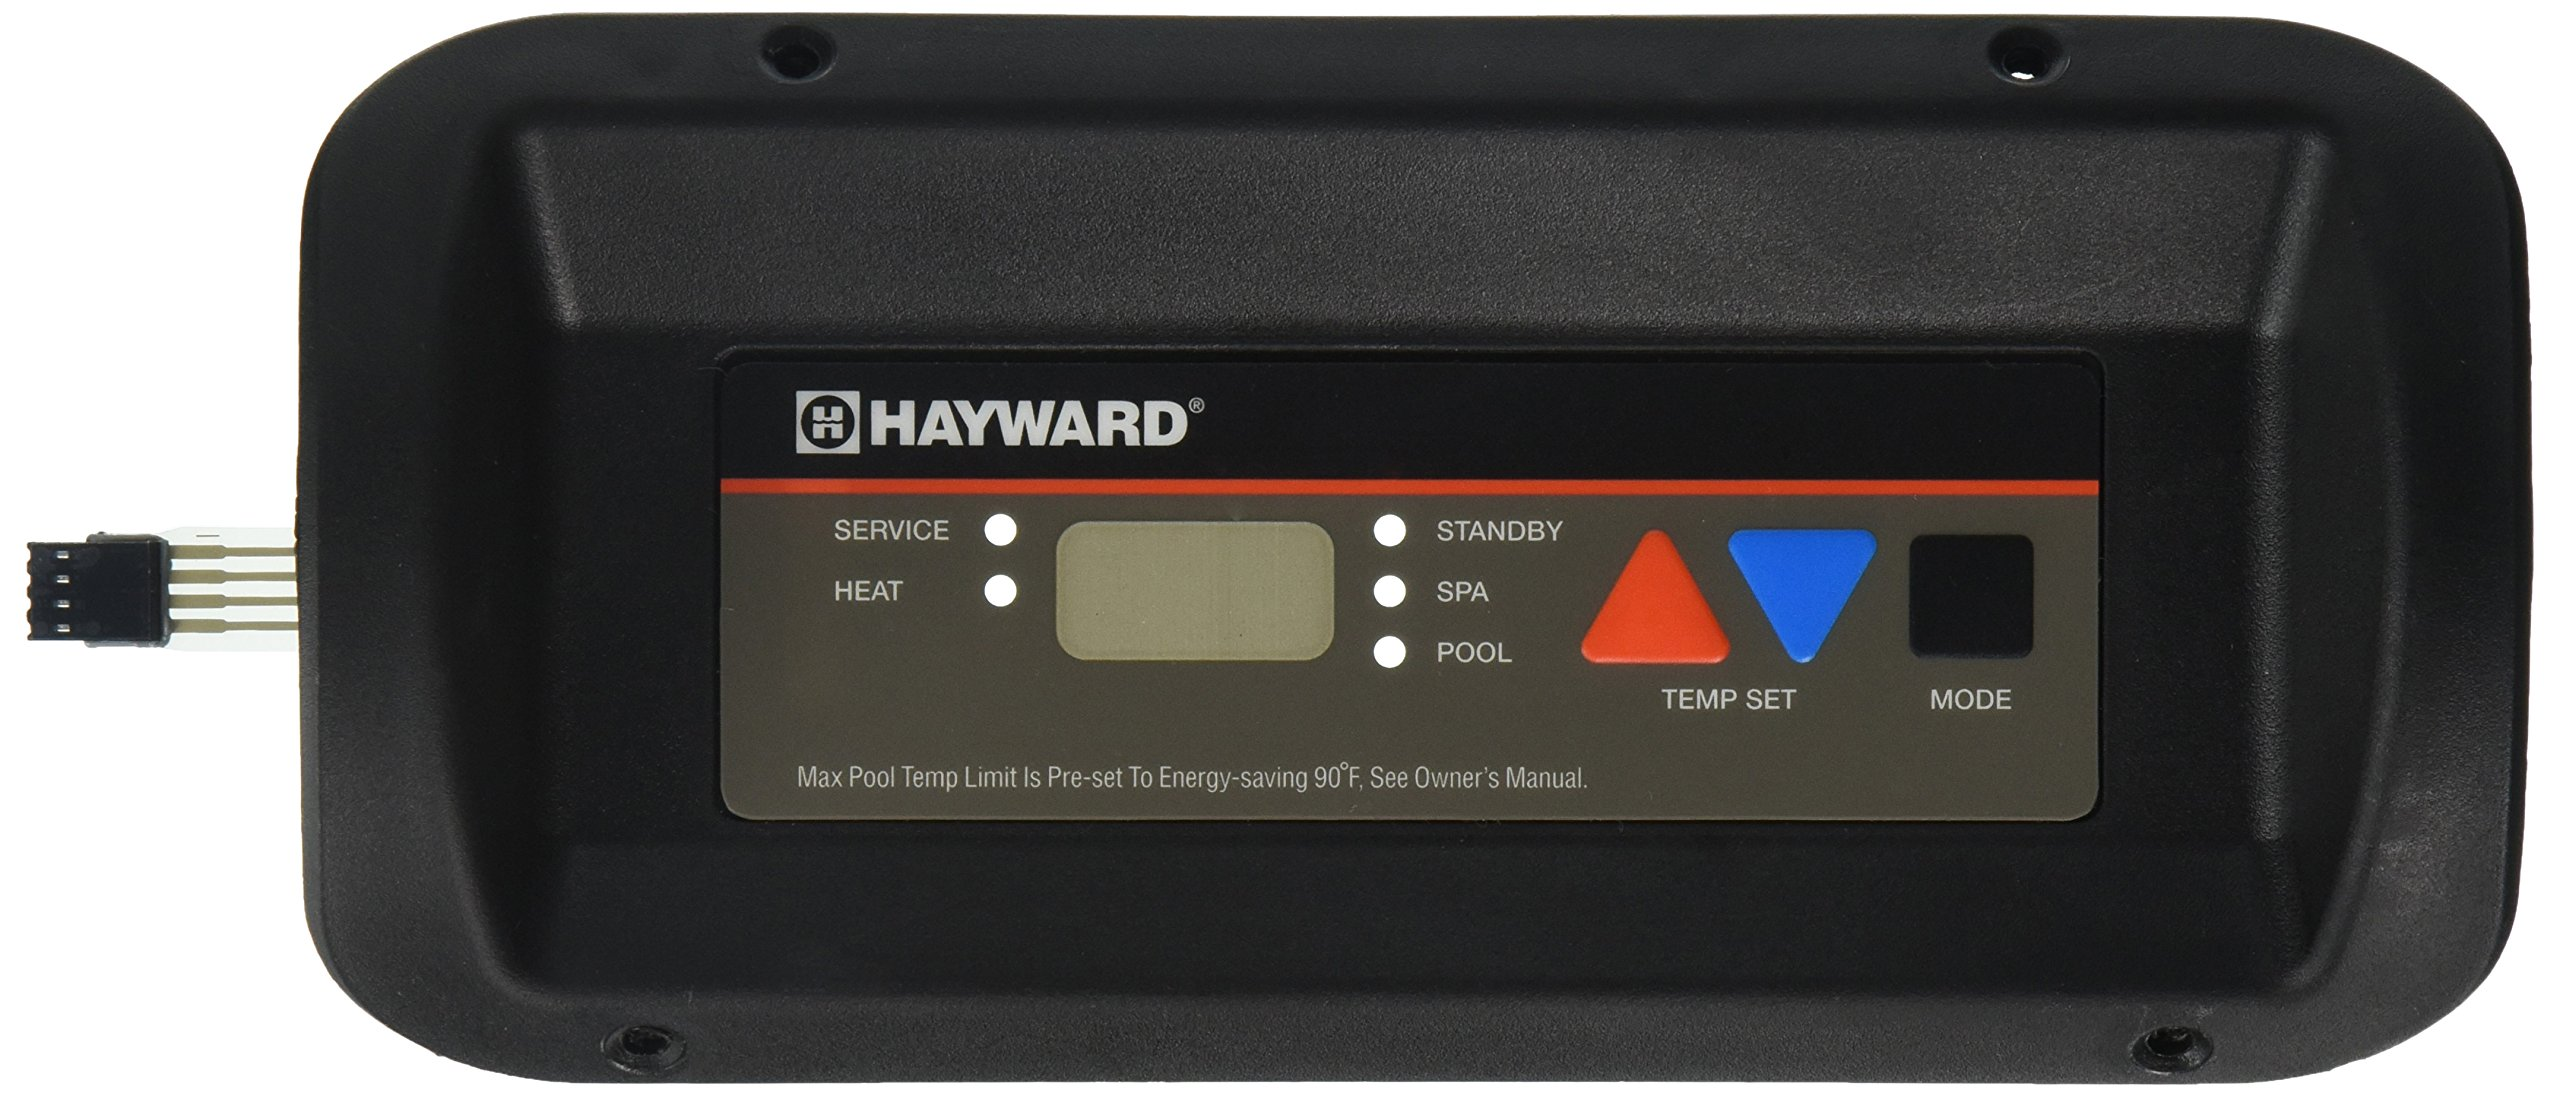 Hayward FDXLBKP1930 Bezel and Keypad Assembly Replacement Kit for Hayward Universal H-Series Low Nox Pool Heater by Hayward